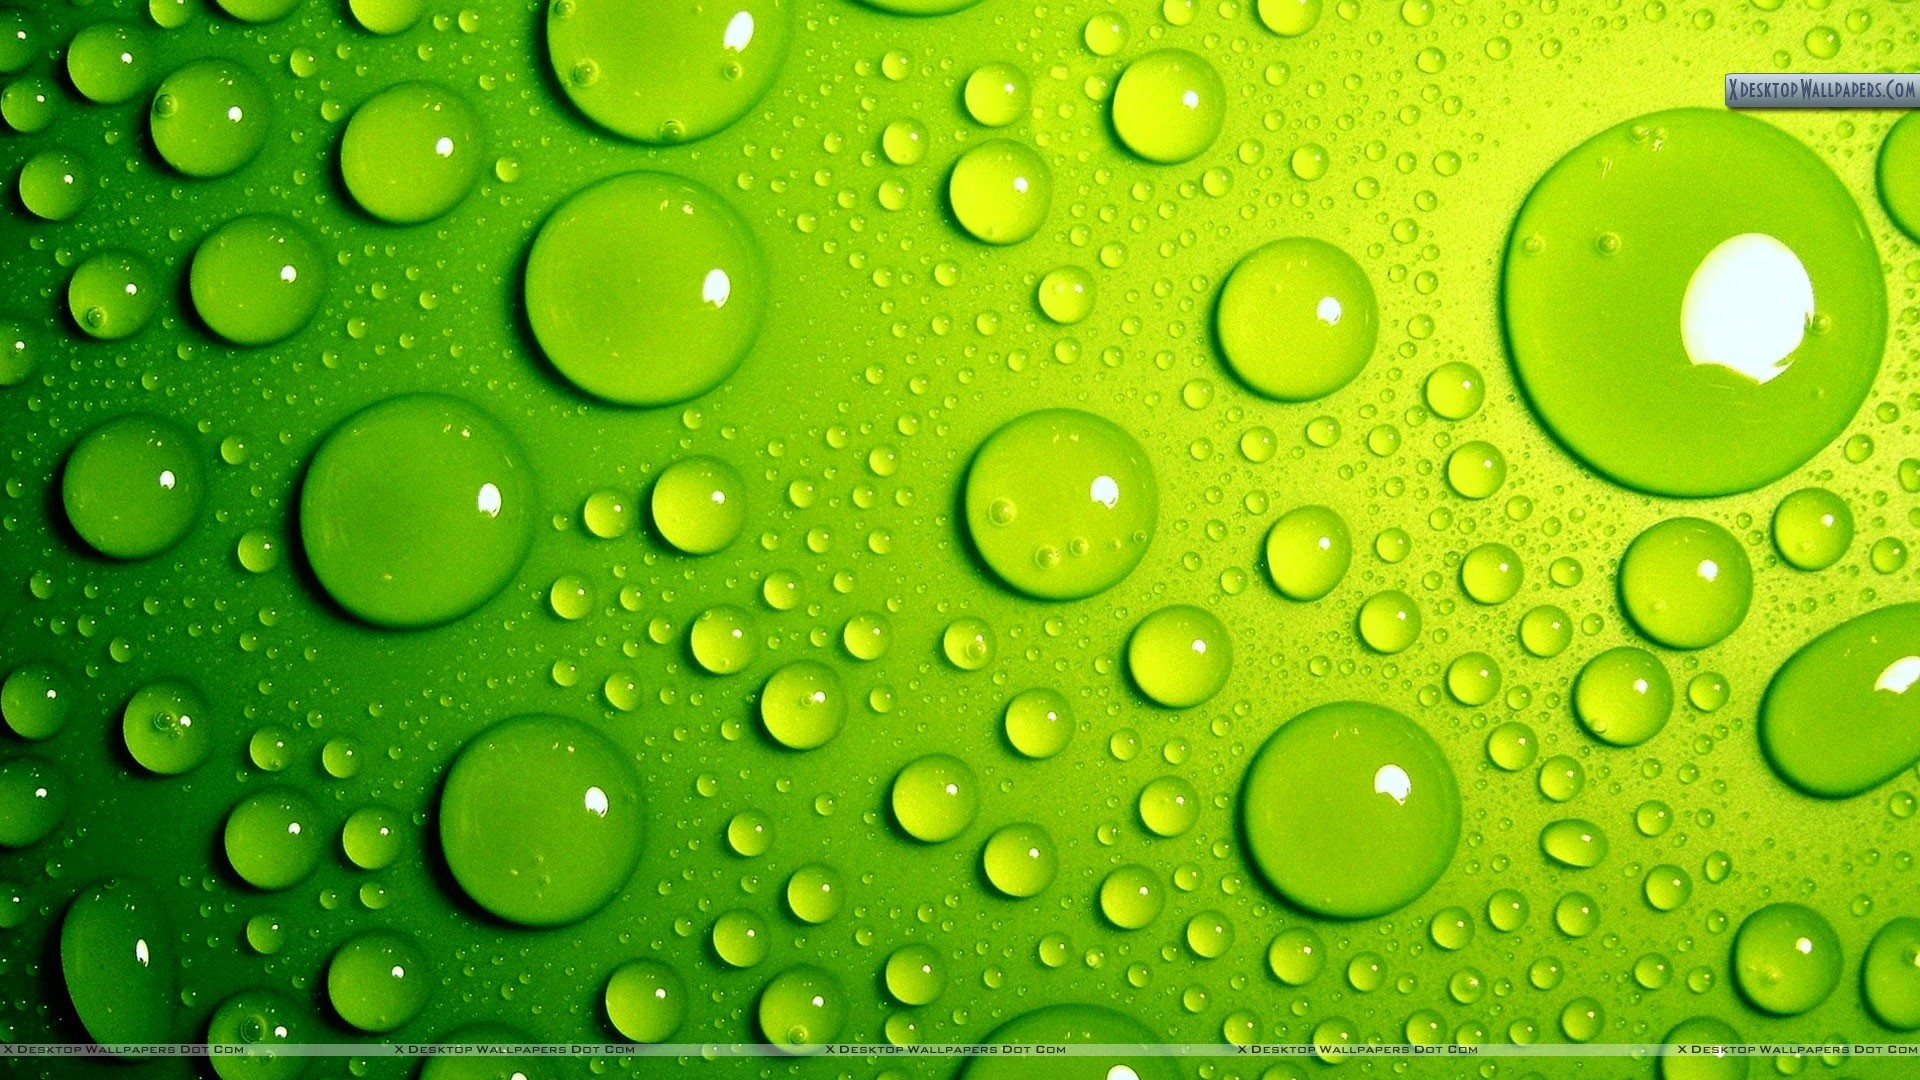 Green Bubbles Awesome Background Wallpaper Wallpaper